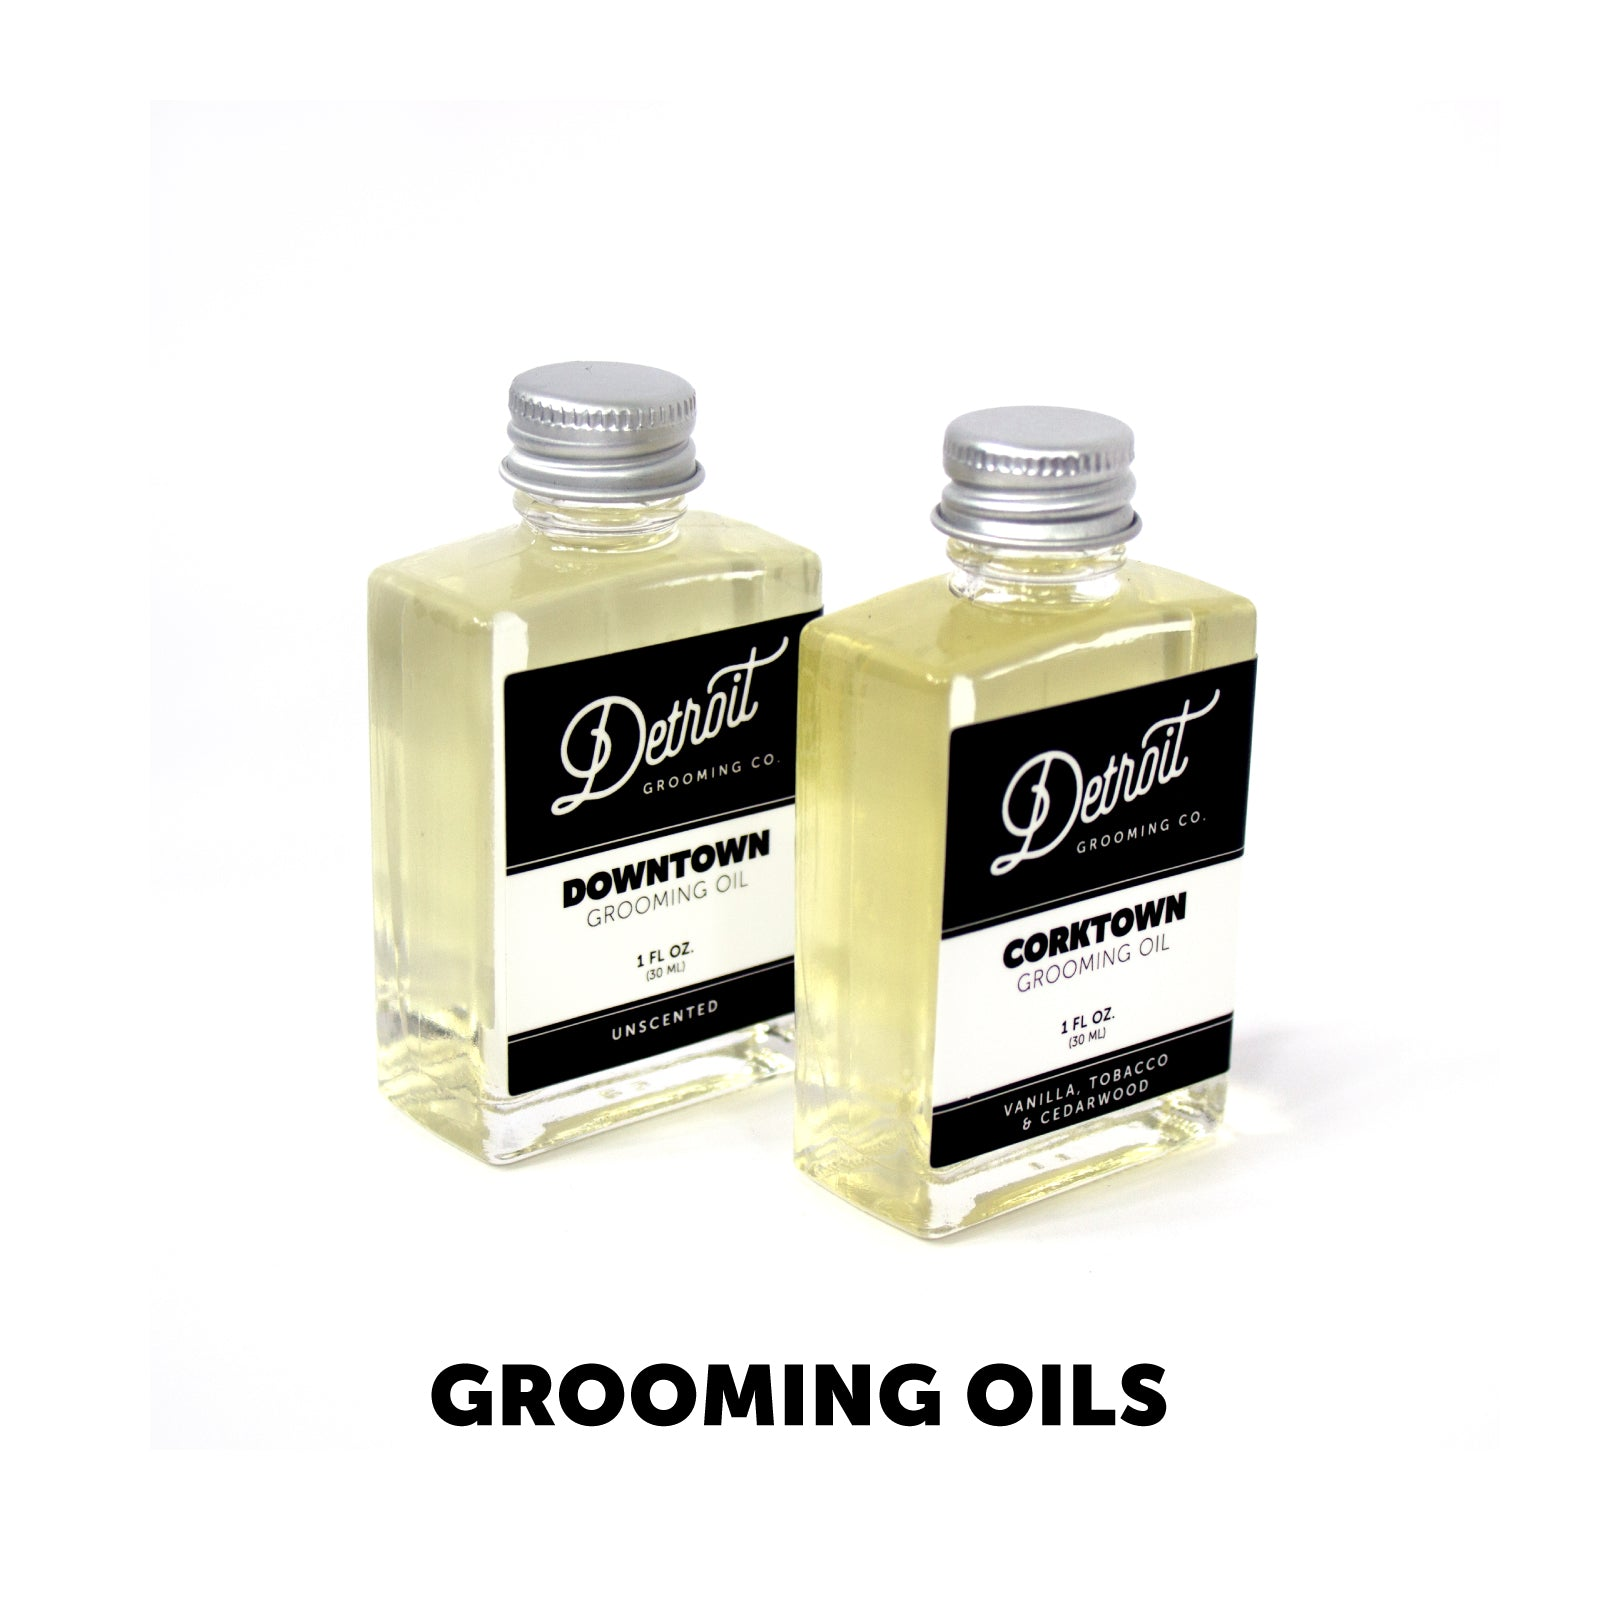 Beard Grooming Products - Beard Oils